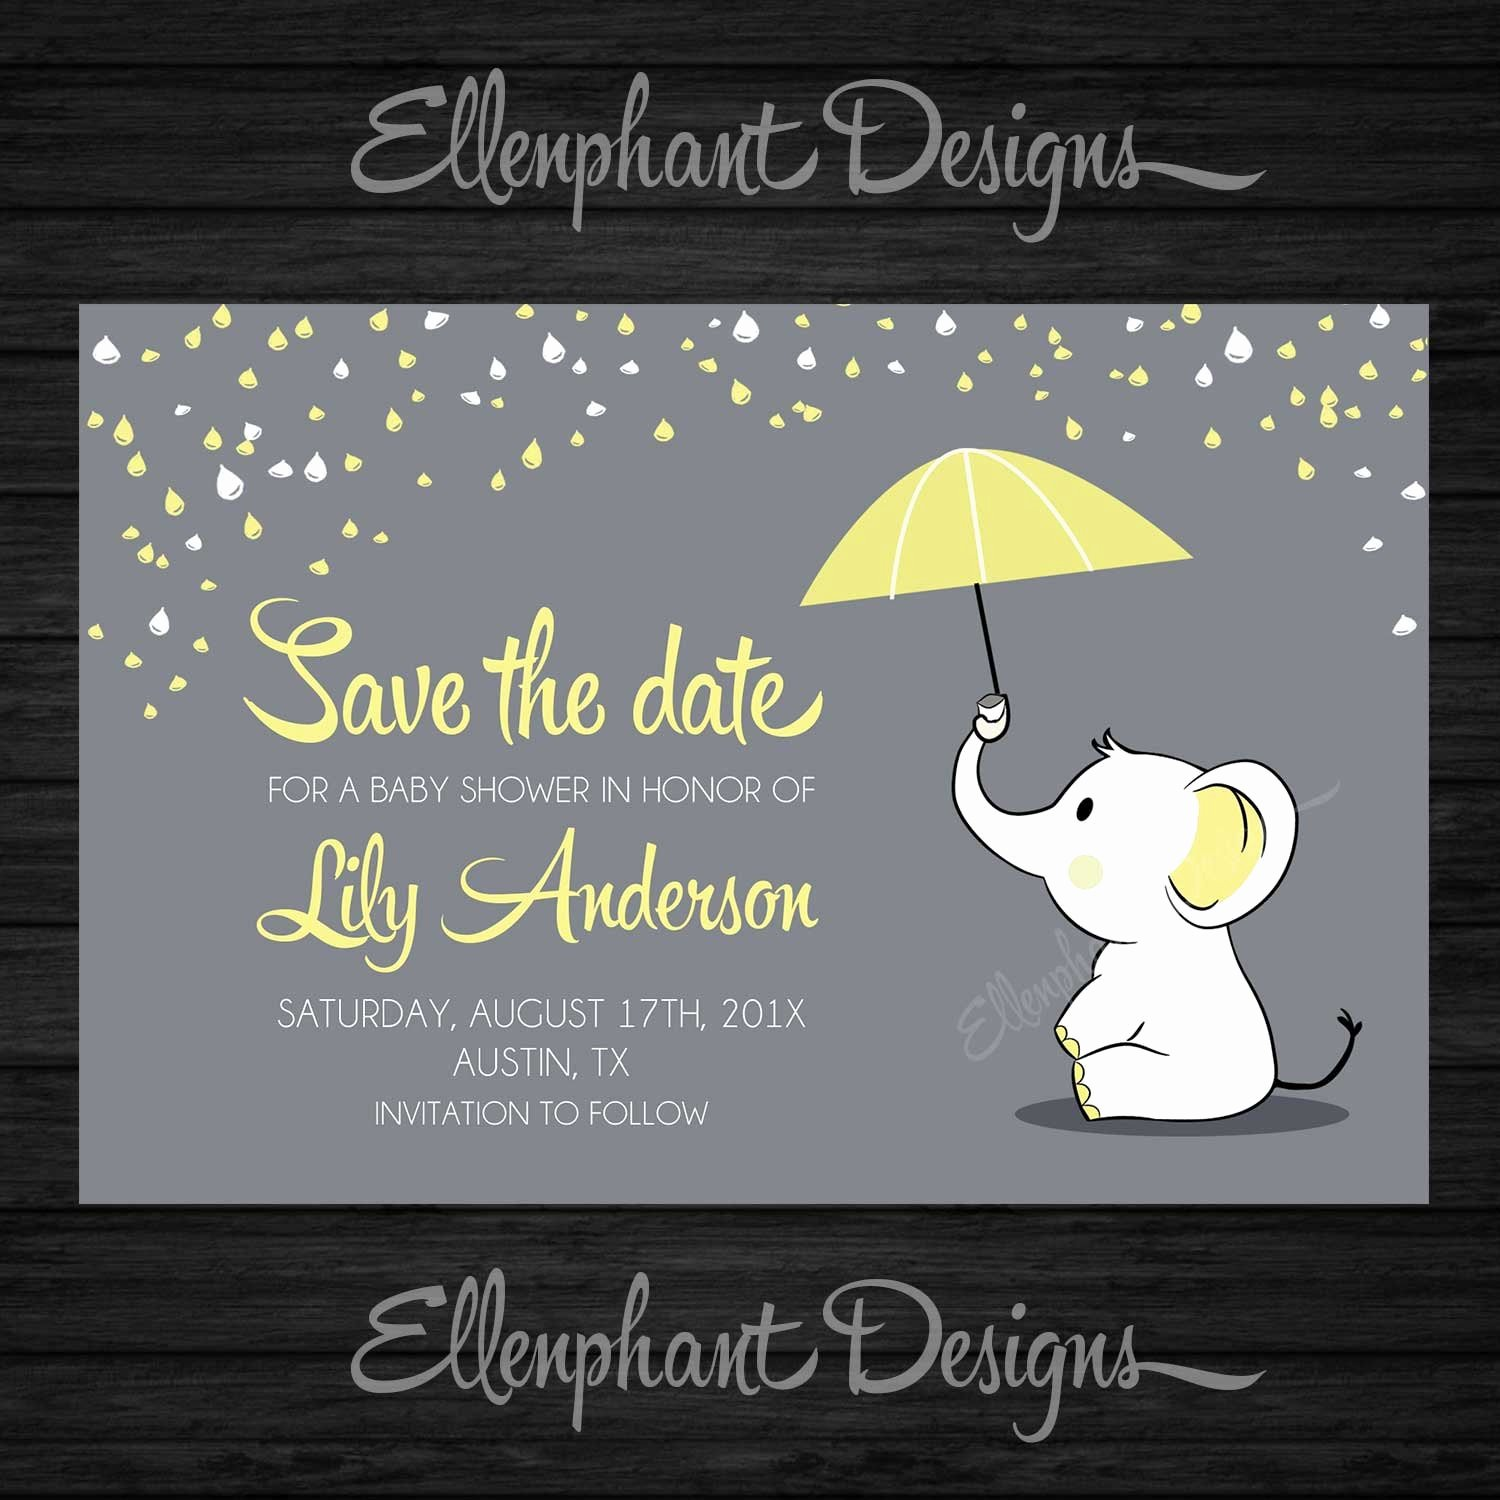 Baby Shower Save the Dates New Save the Date Yellow Elephant Baby Shower Umbrella Rain